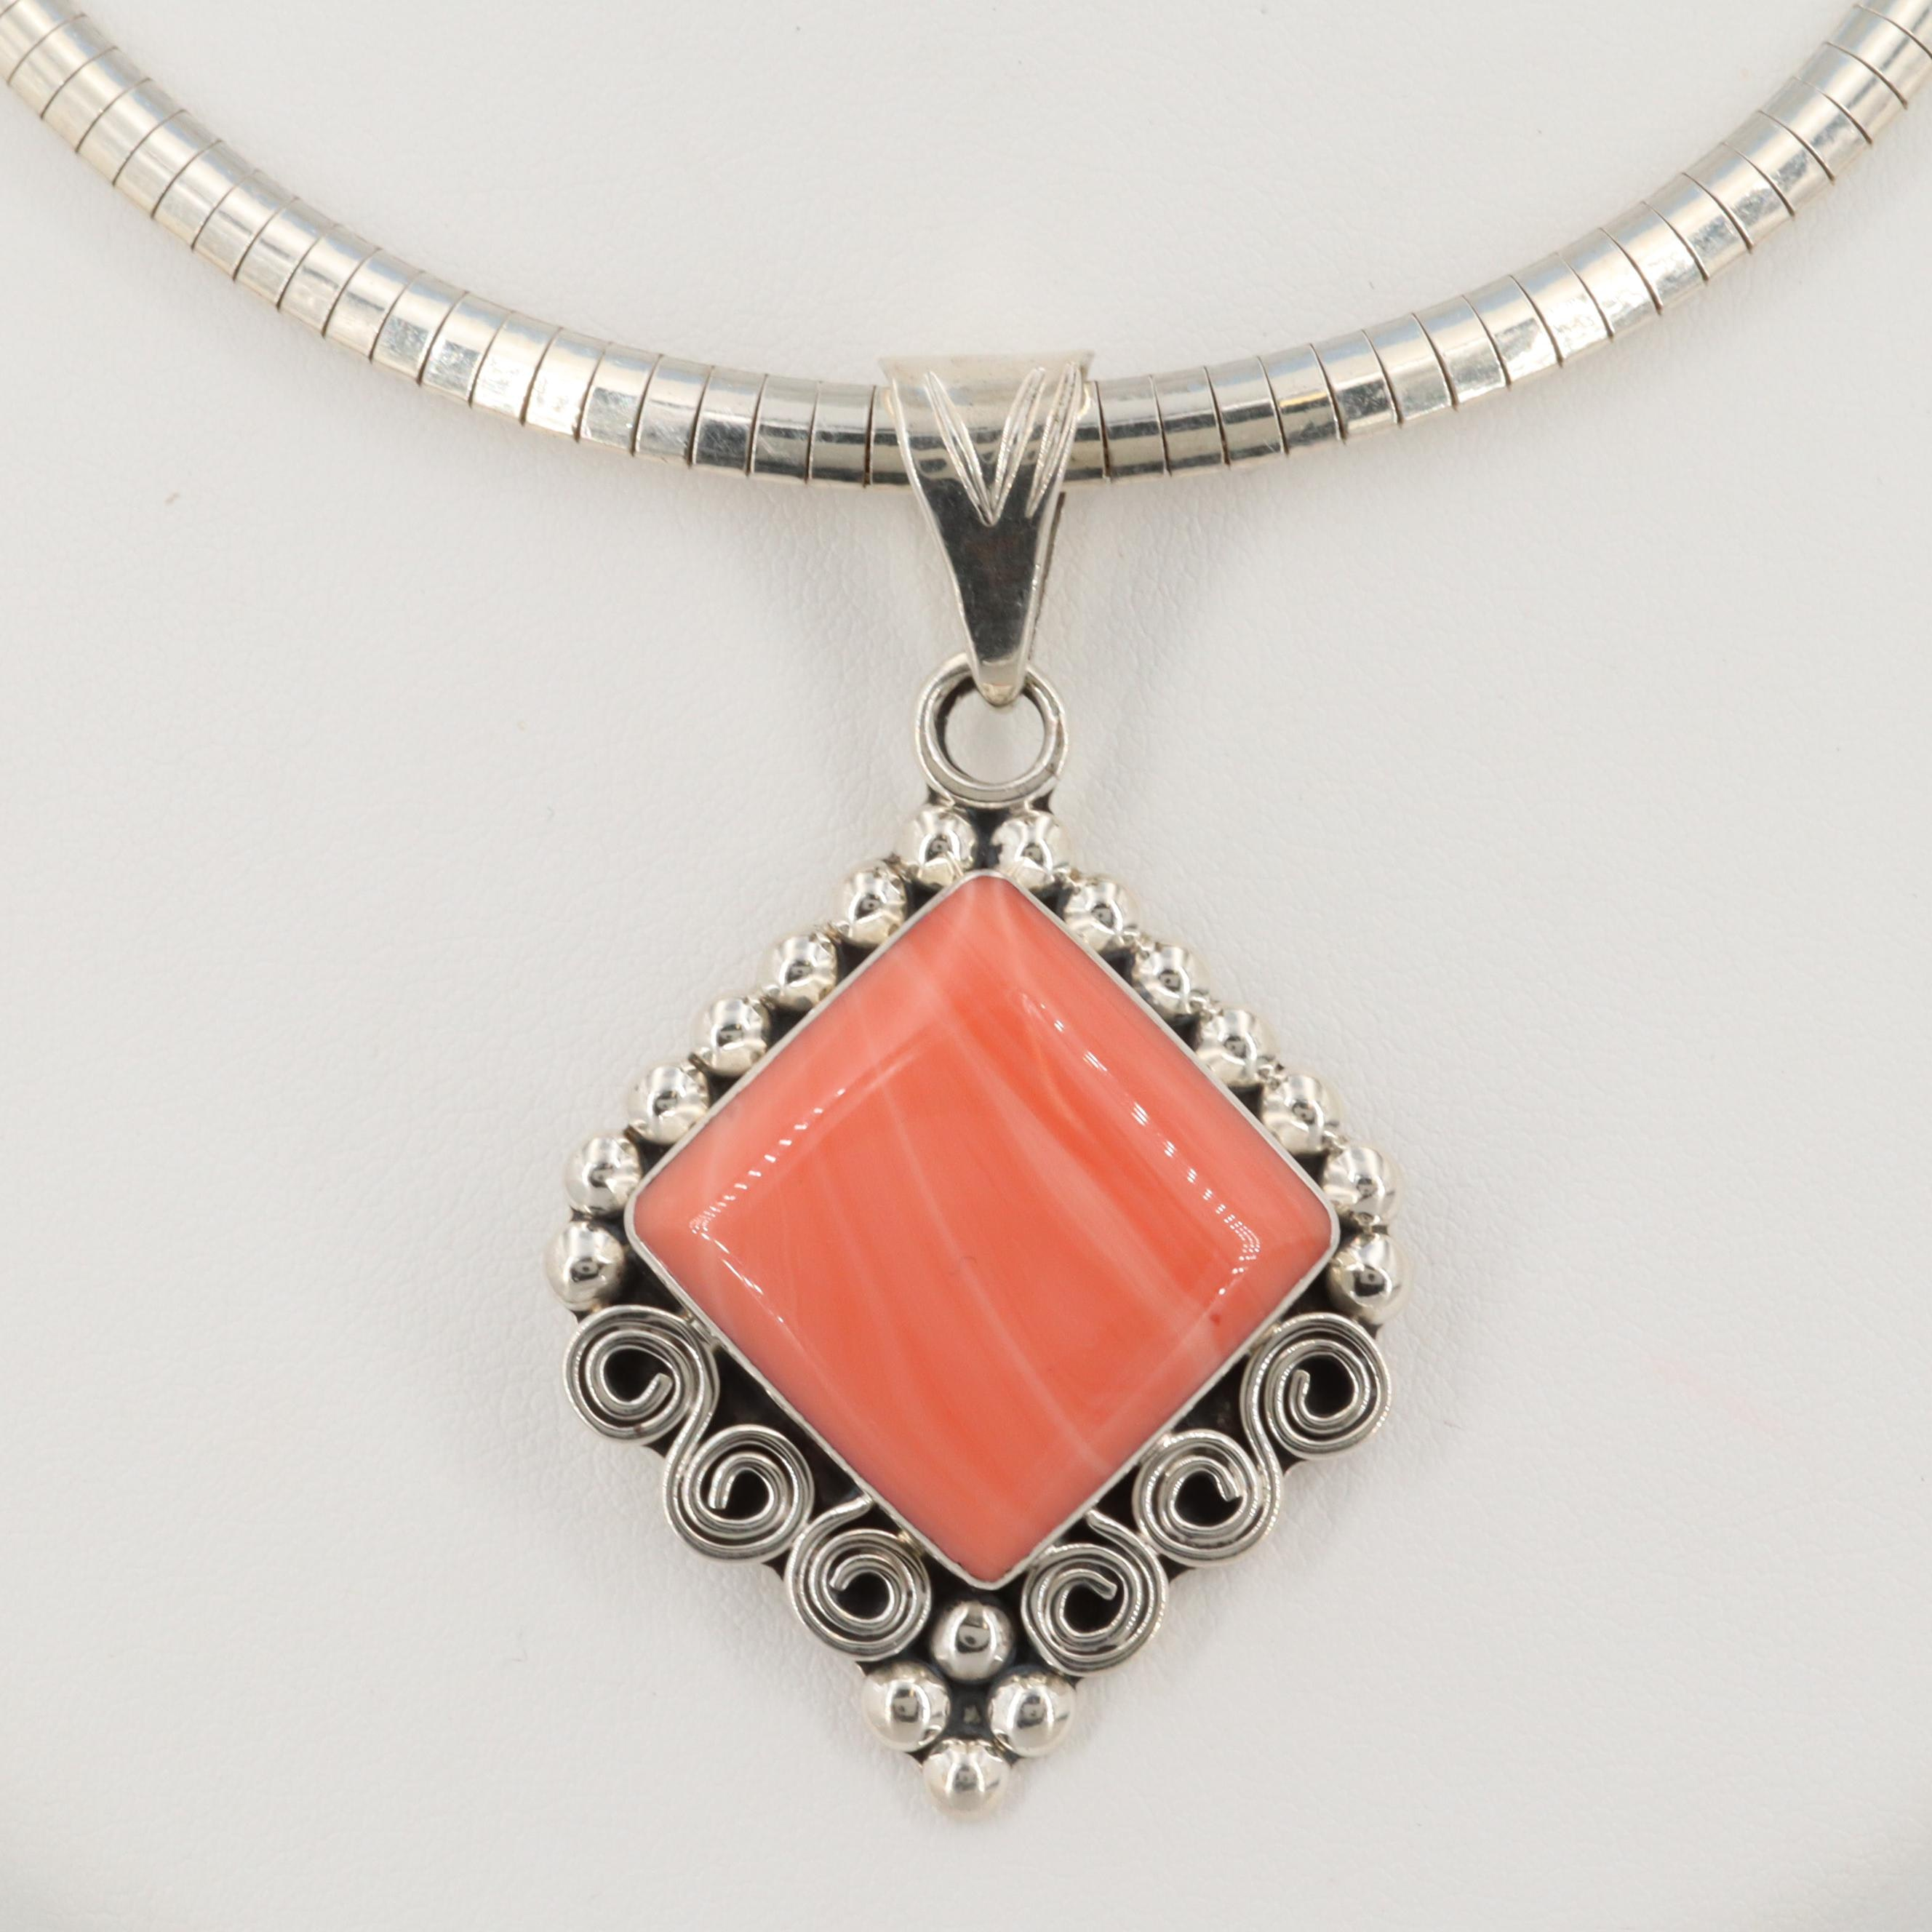 Sterling Silver Mexican Glass Pendant on Omega Chain Necklace